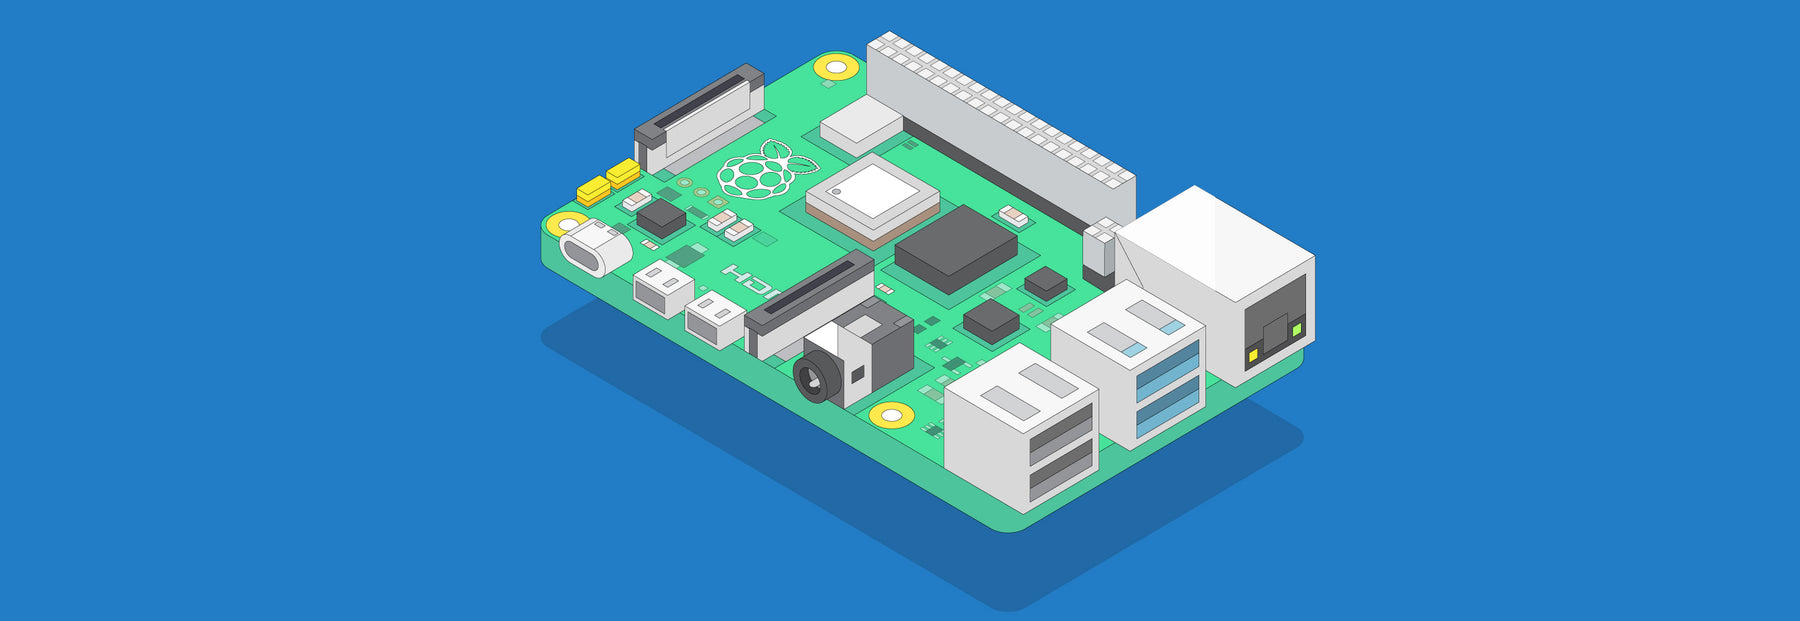 Raspberry Pi 4 Model B+ : Tips & Tricks